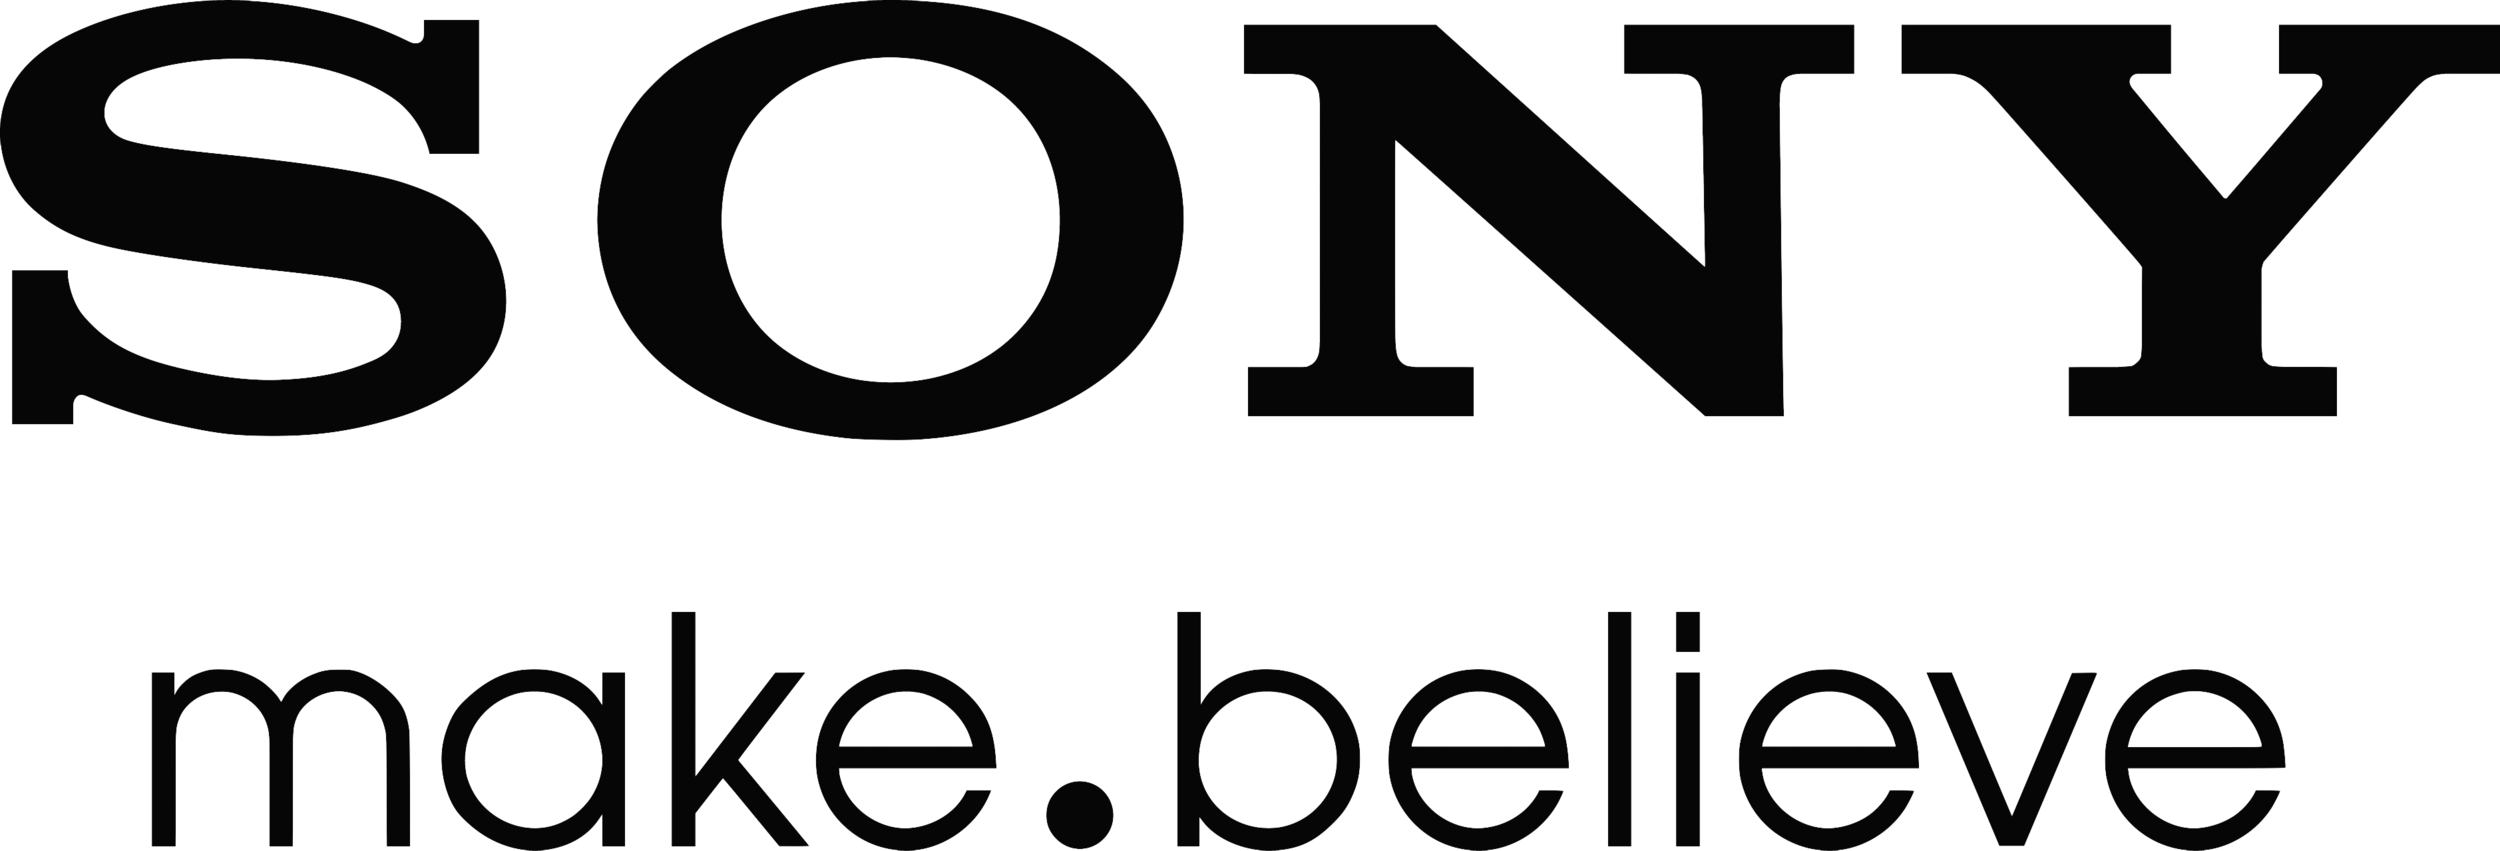 Sony_logo-2.png